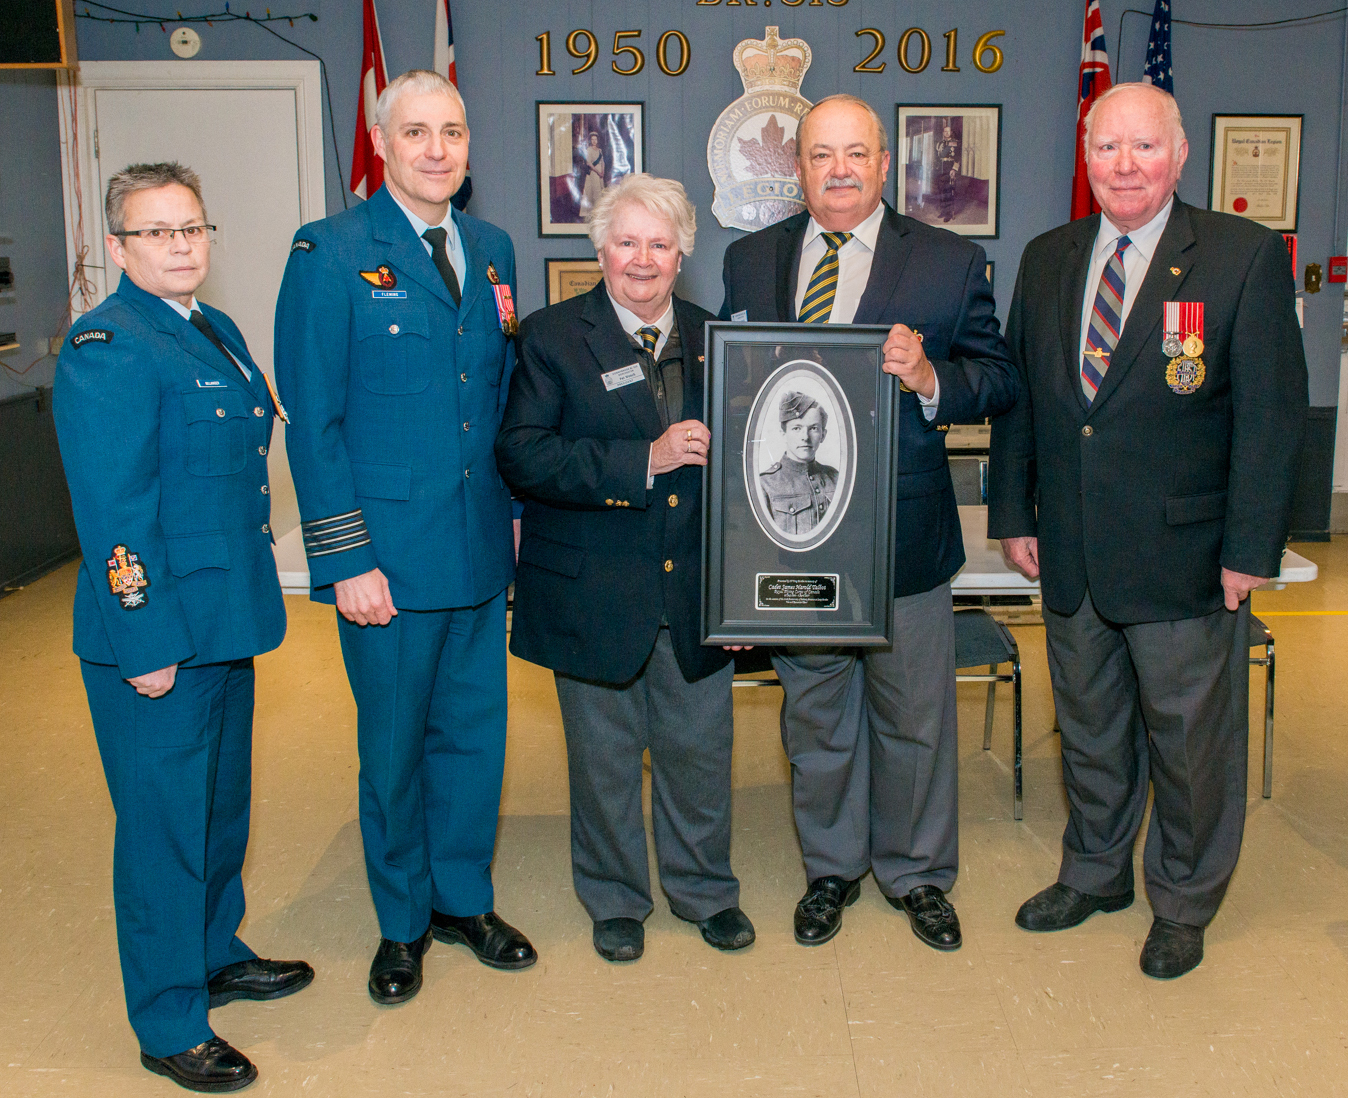 Following the ceremony honouring Cadet James Talbot, the 16 Wing Borden contingent was hosted by Royal Canadian Legion Dorchester Donnybrook Branch 513. At that time, the Legion branch was presented with a portrait of Cadet Talbot, a replica of the portrait that hangs in the Base Borden Military Museum. From left to right are Chief Warrant Officer Necole Belanger, Colonel Andrew Fleming, Pat Wonch, branch president, Shane Lynch, branch vice-president, and Robert Beamish, branch secretary. PHOTO: Corporal Aydyn Neifer, BM03-2017-0107-19